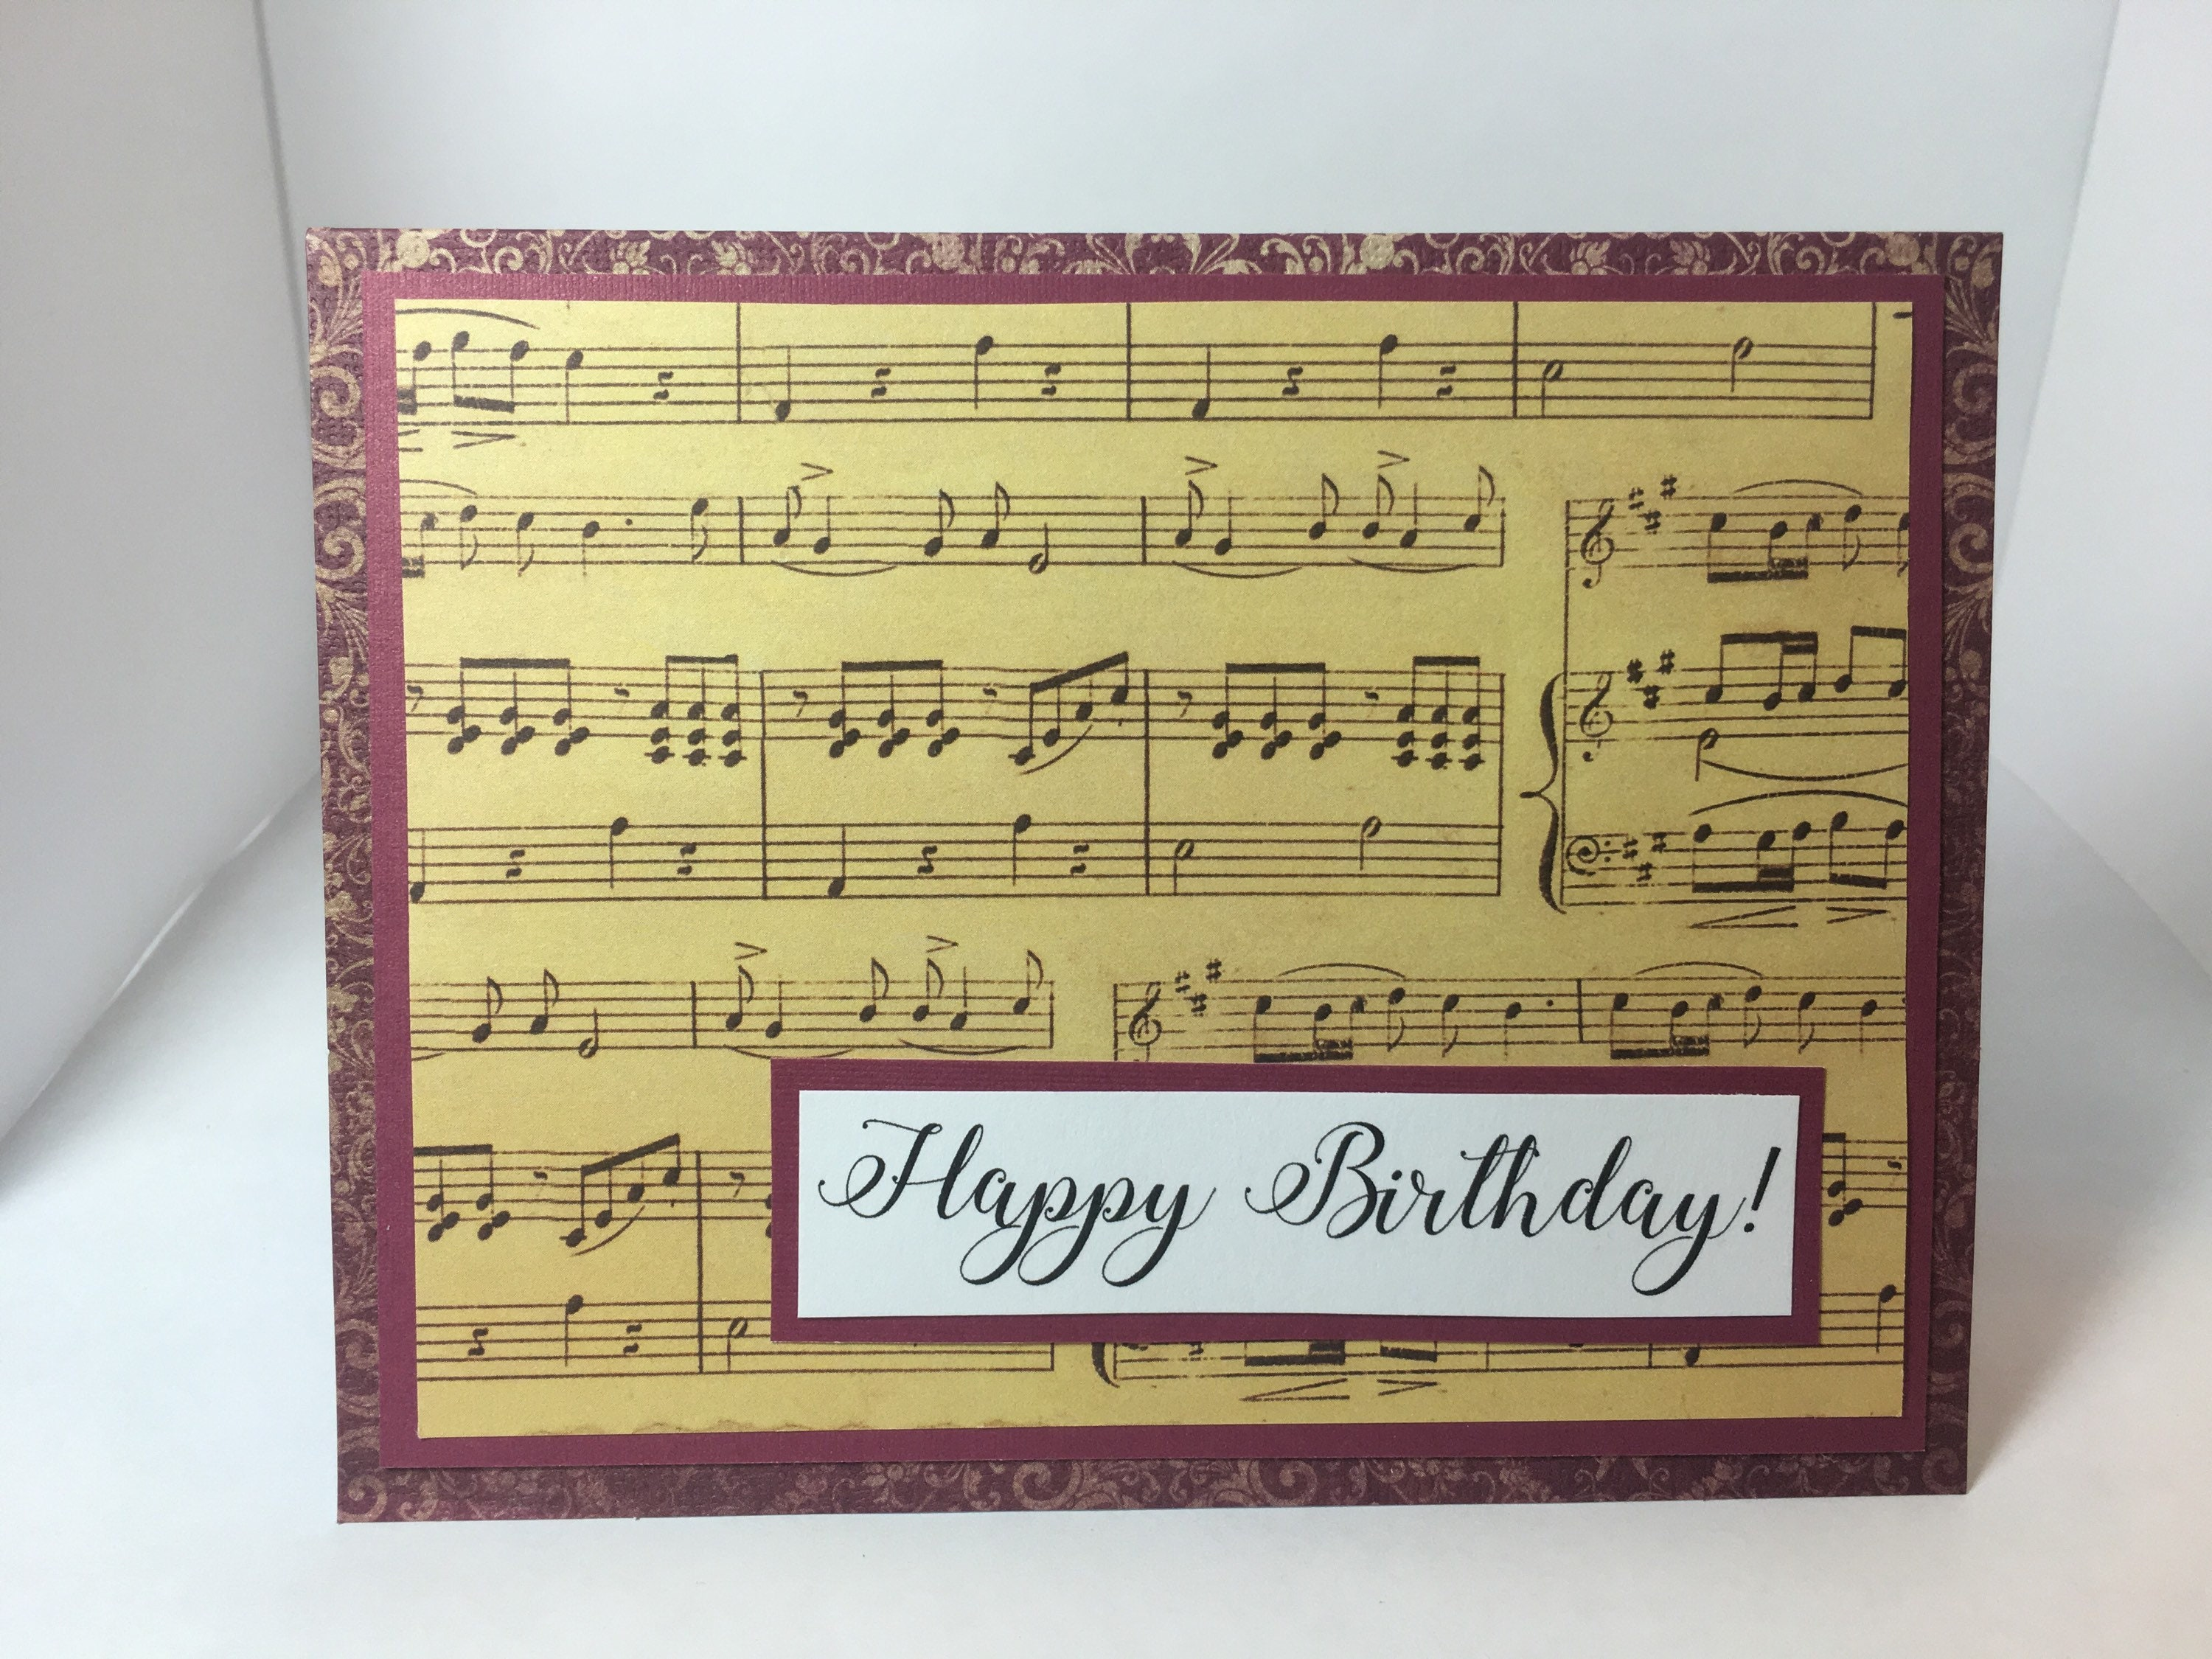 Swell Happy Birthday Card For Your Music Teacher Inspiration Or Etsy Personalised Birthday Cards Cominlily Jamesorg